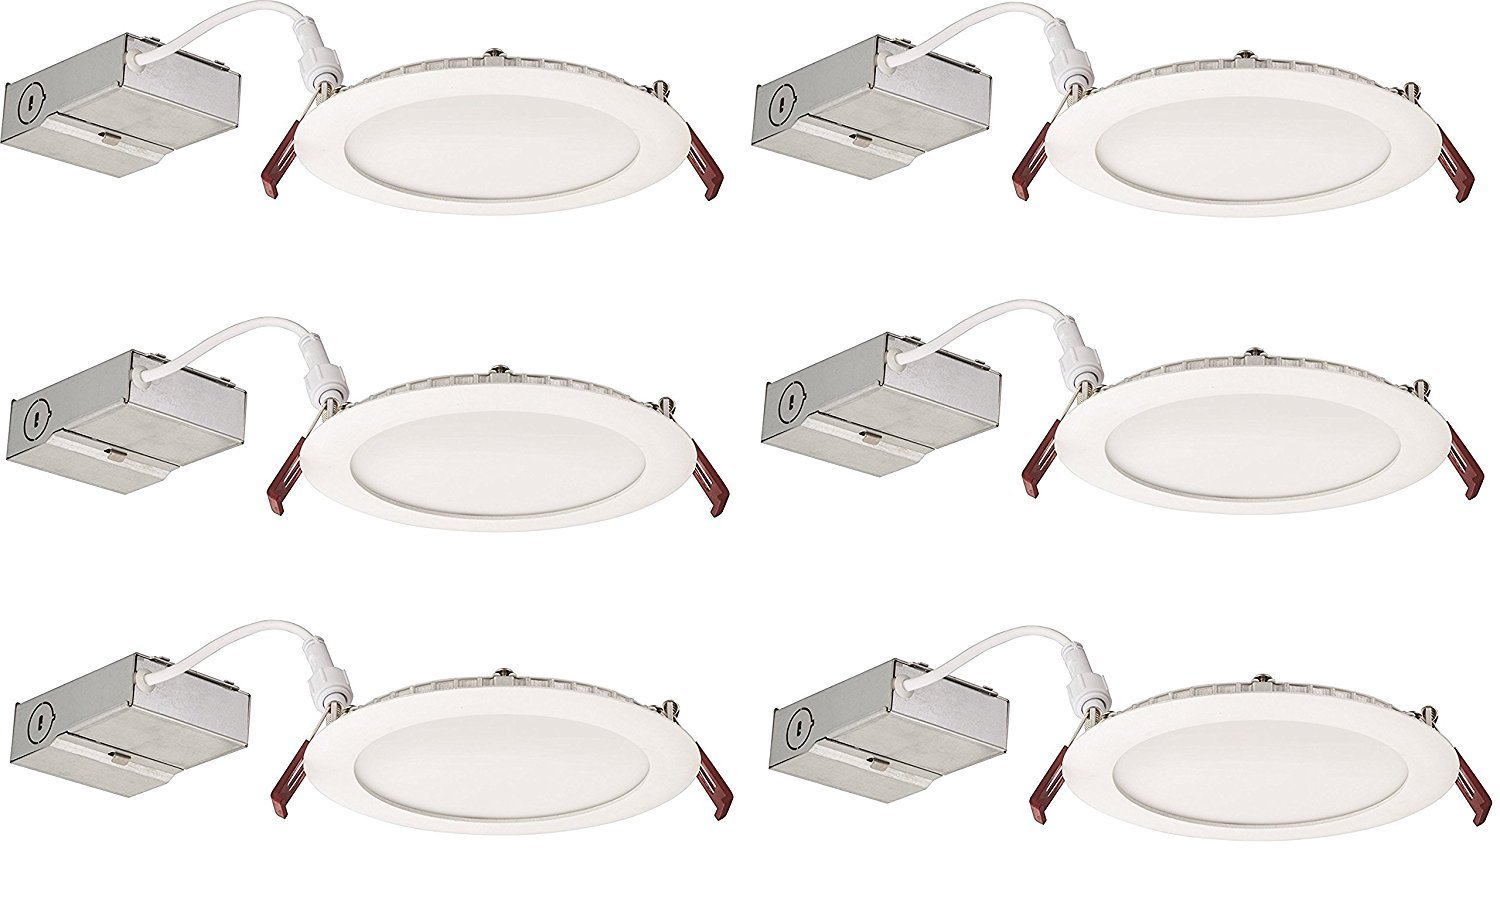 Lithonia Lighting (Pack of 6) 13.6W Ultra Thin 6'' Dimmable Recessed Ceiling Light, 4000K, White - Easy to install - Save time and money - Energy Efficient LED Lighting